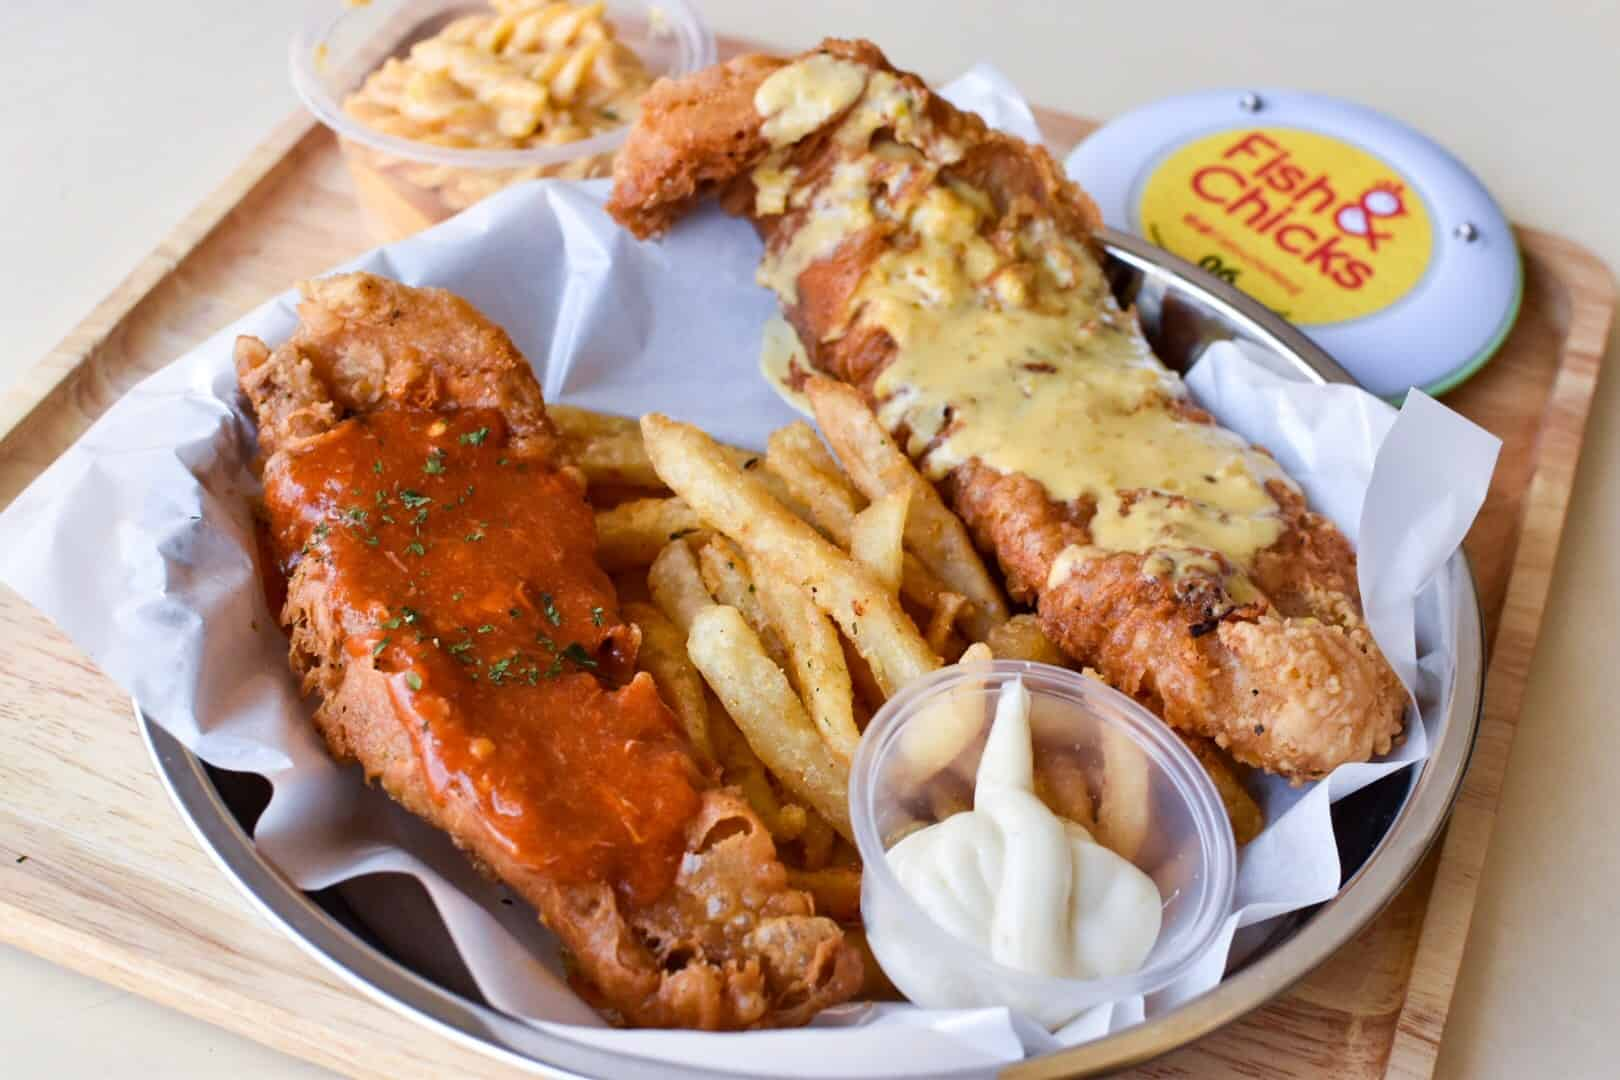 5 Unassuming Places In Singapore That You Never Expect Would Have Great Food